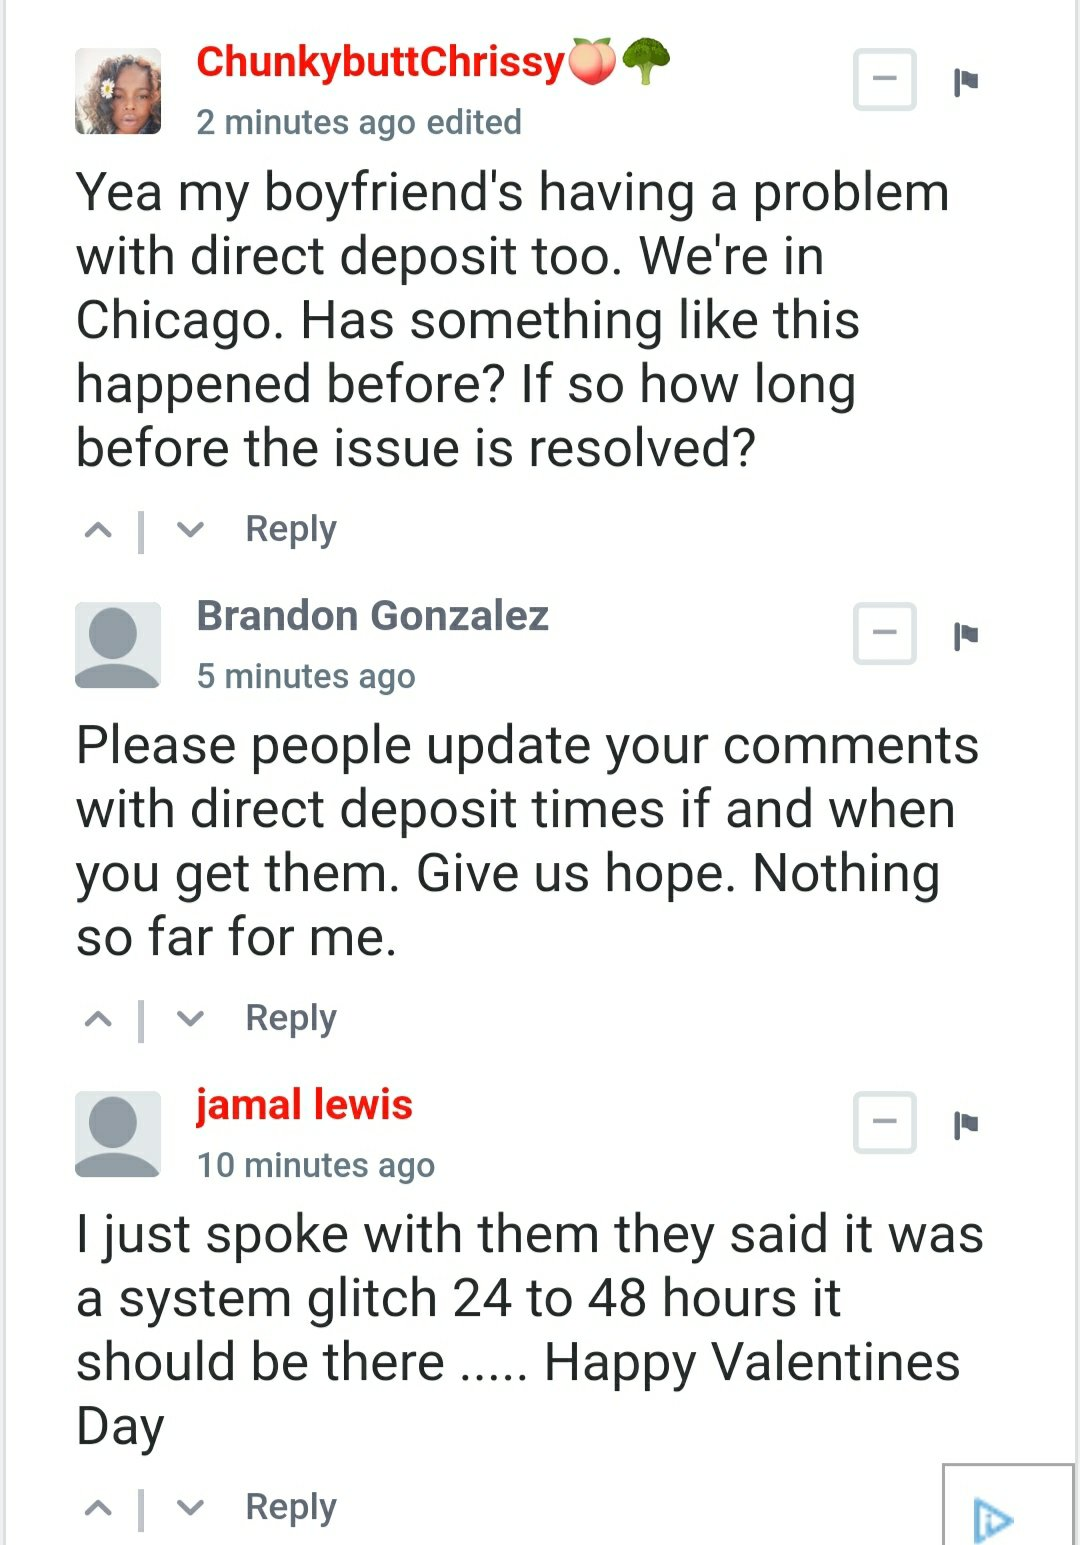 PayPal down - Users facing issues with Direct Deposit currently